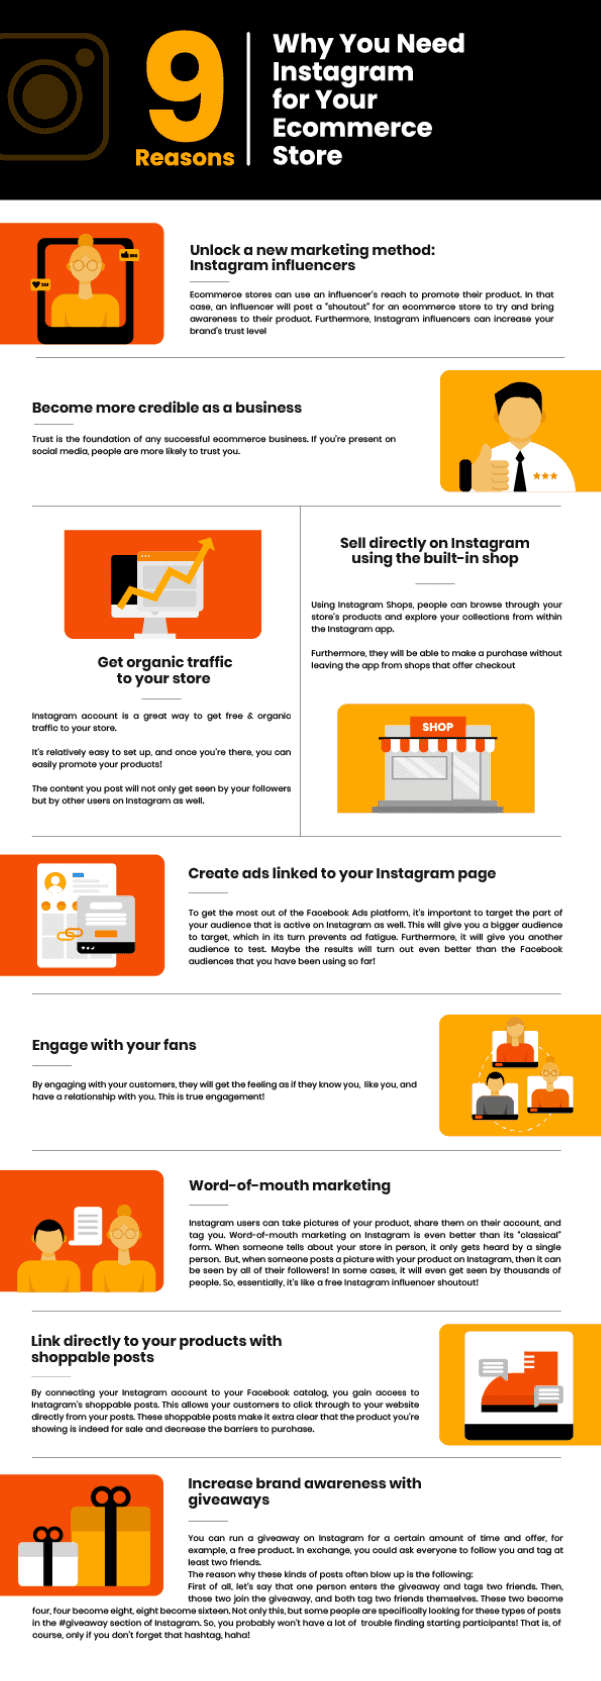 Reasons to use Instagram for ecommerce - infographic